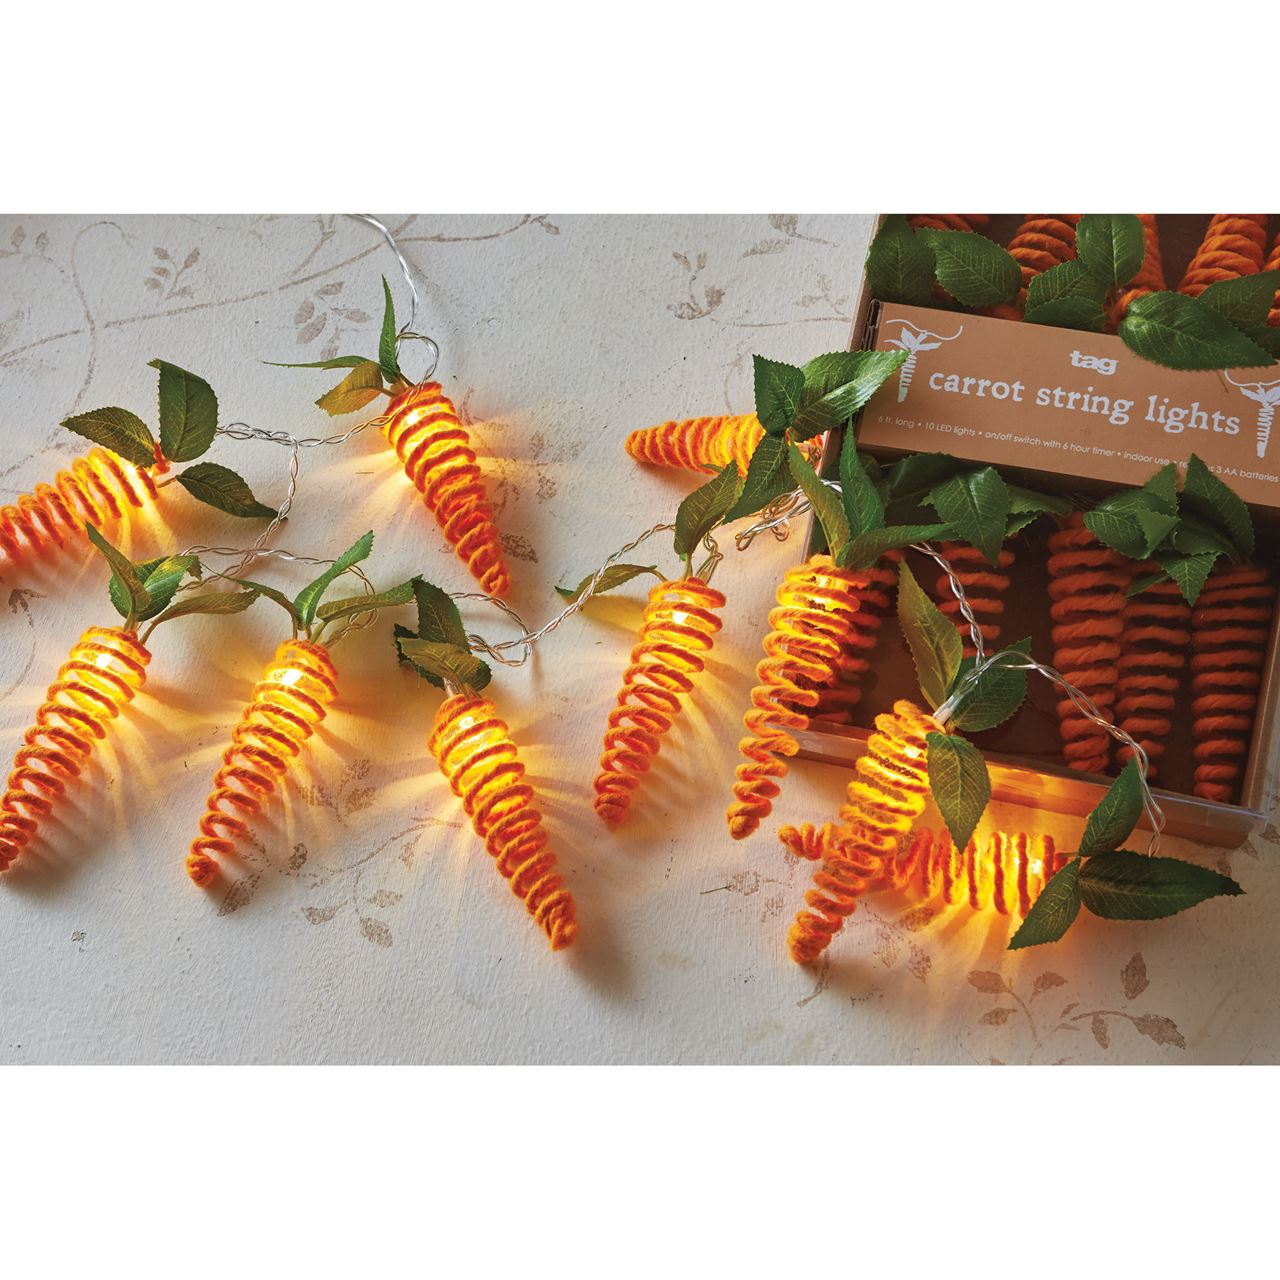 Carrot String Lights by Tag